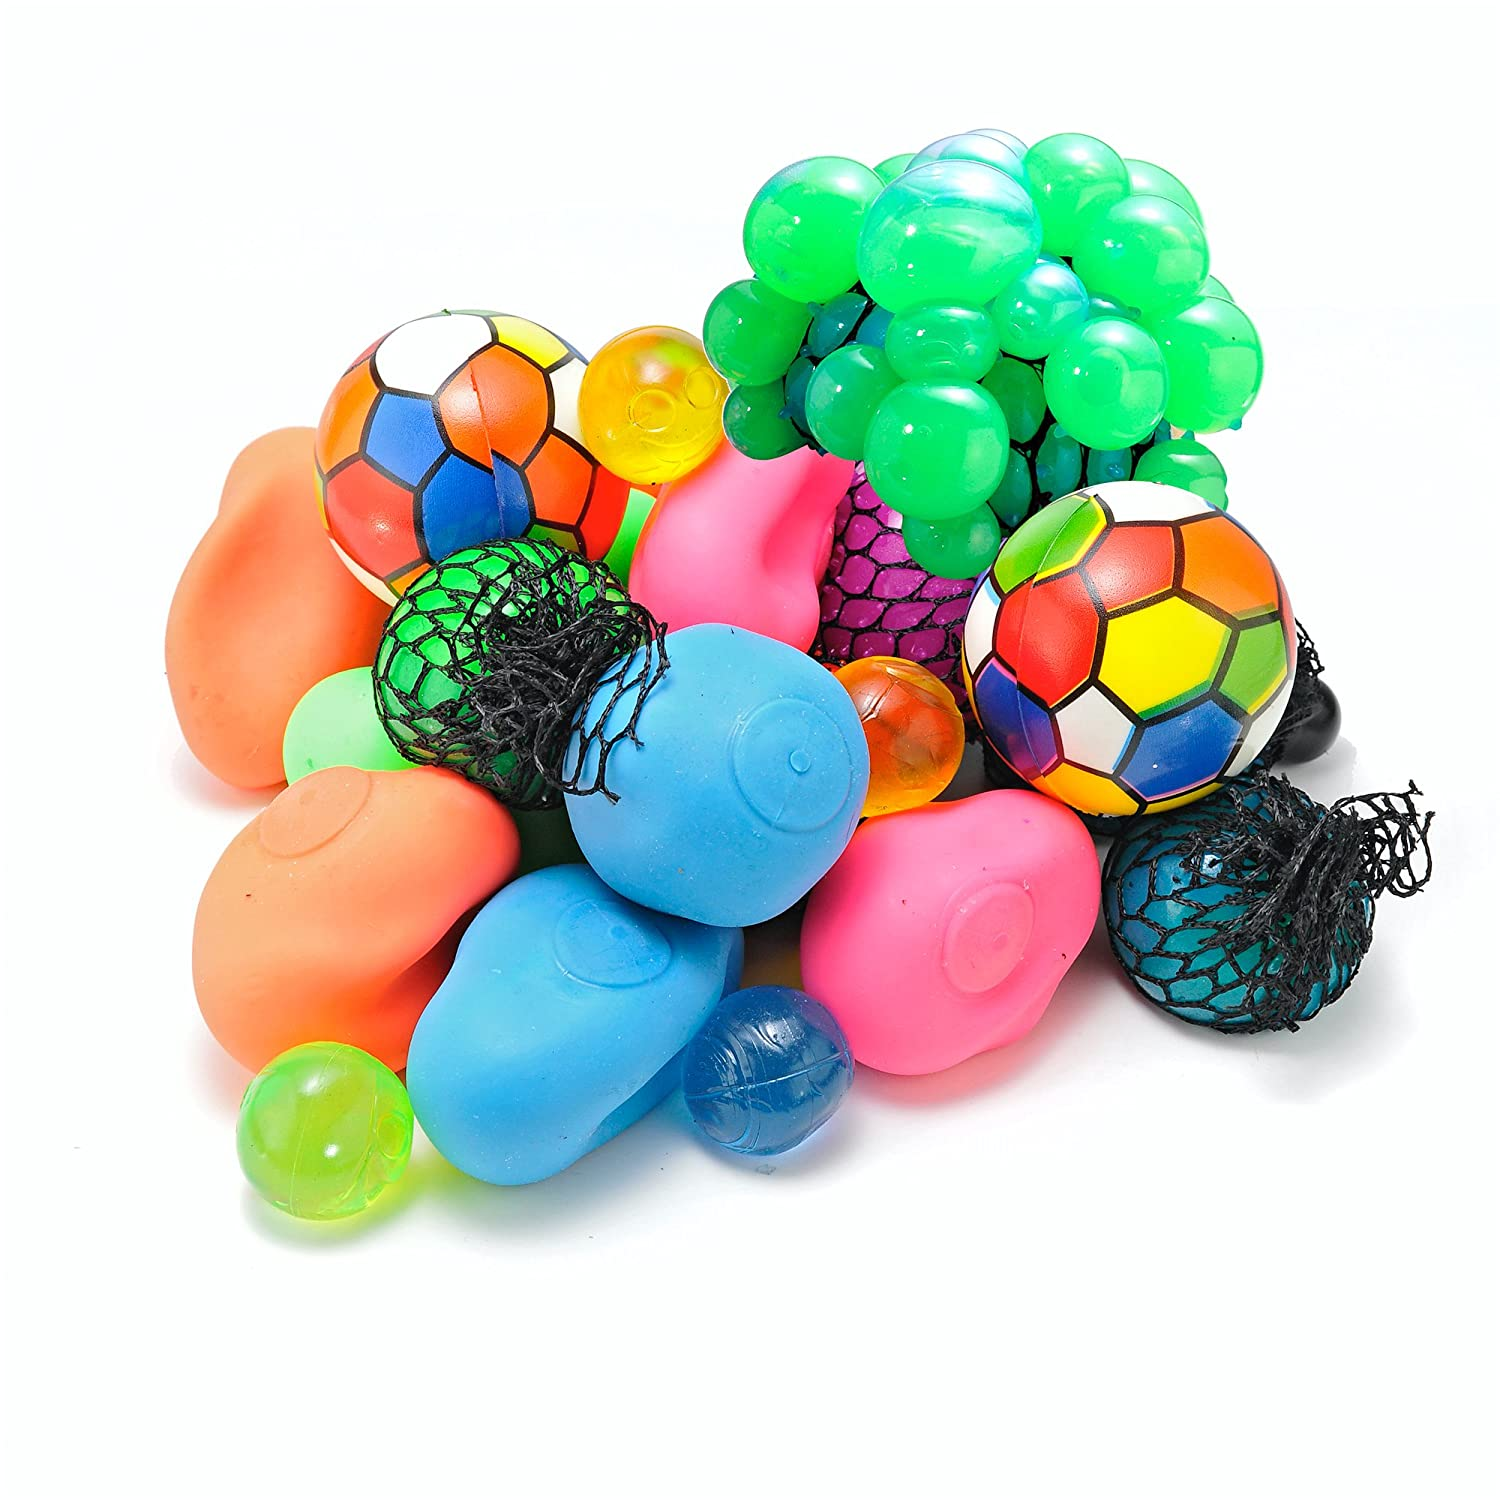 "12 Pack + Free Bonus! Assorted Squishy Toy Balls (Squeeze  Stretch  Bounce  Grape  Jelly) for Stress and Anxiety Relief - Includes Free 3"" Neon Squeeze Ball from Bottles N Bags"